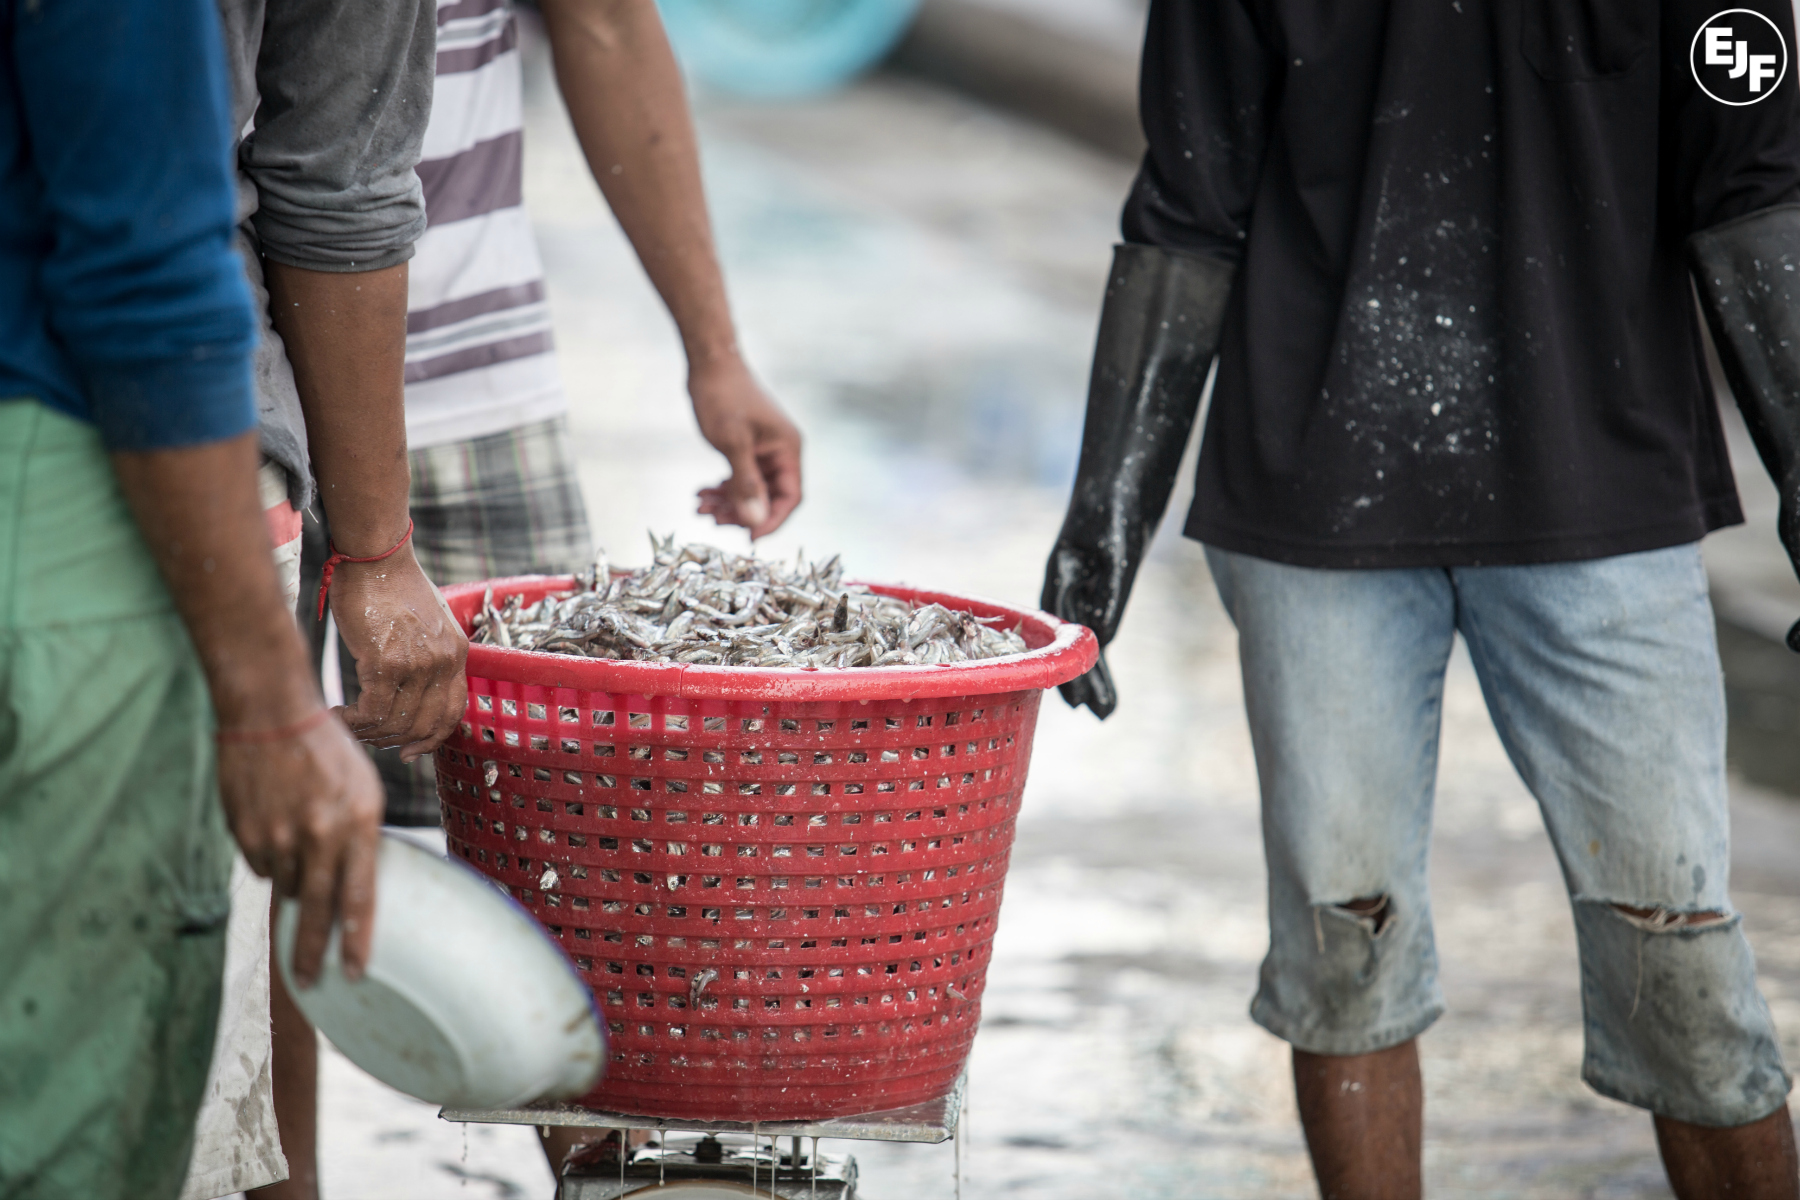 Slavery in the seafood supply chain: what can we do about it? - EVENT